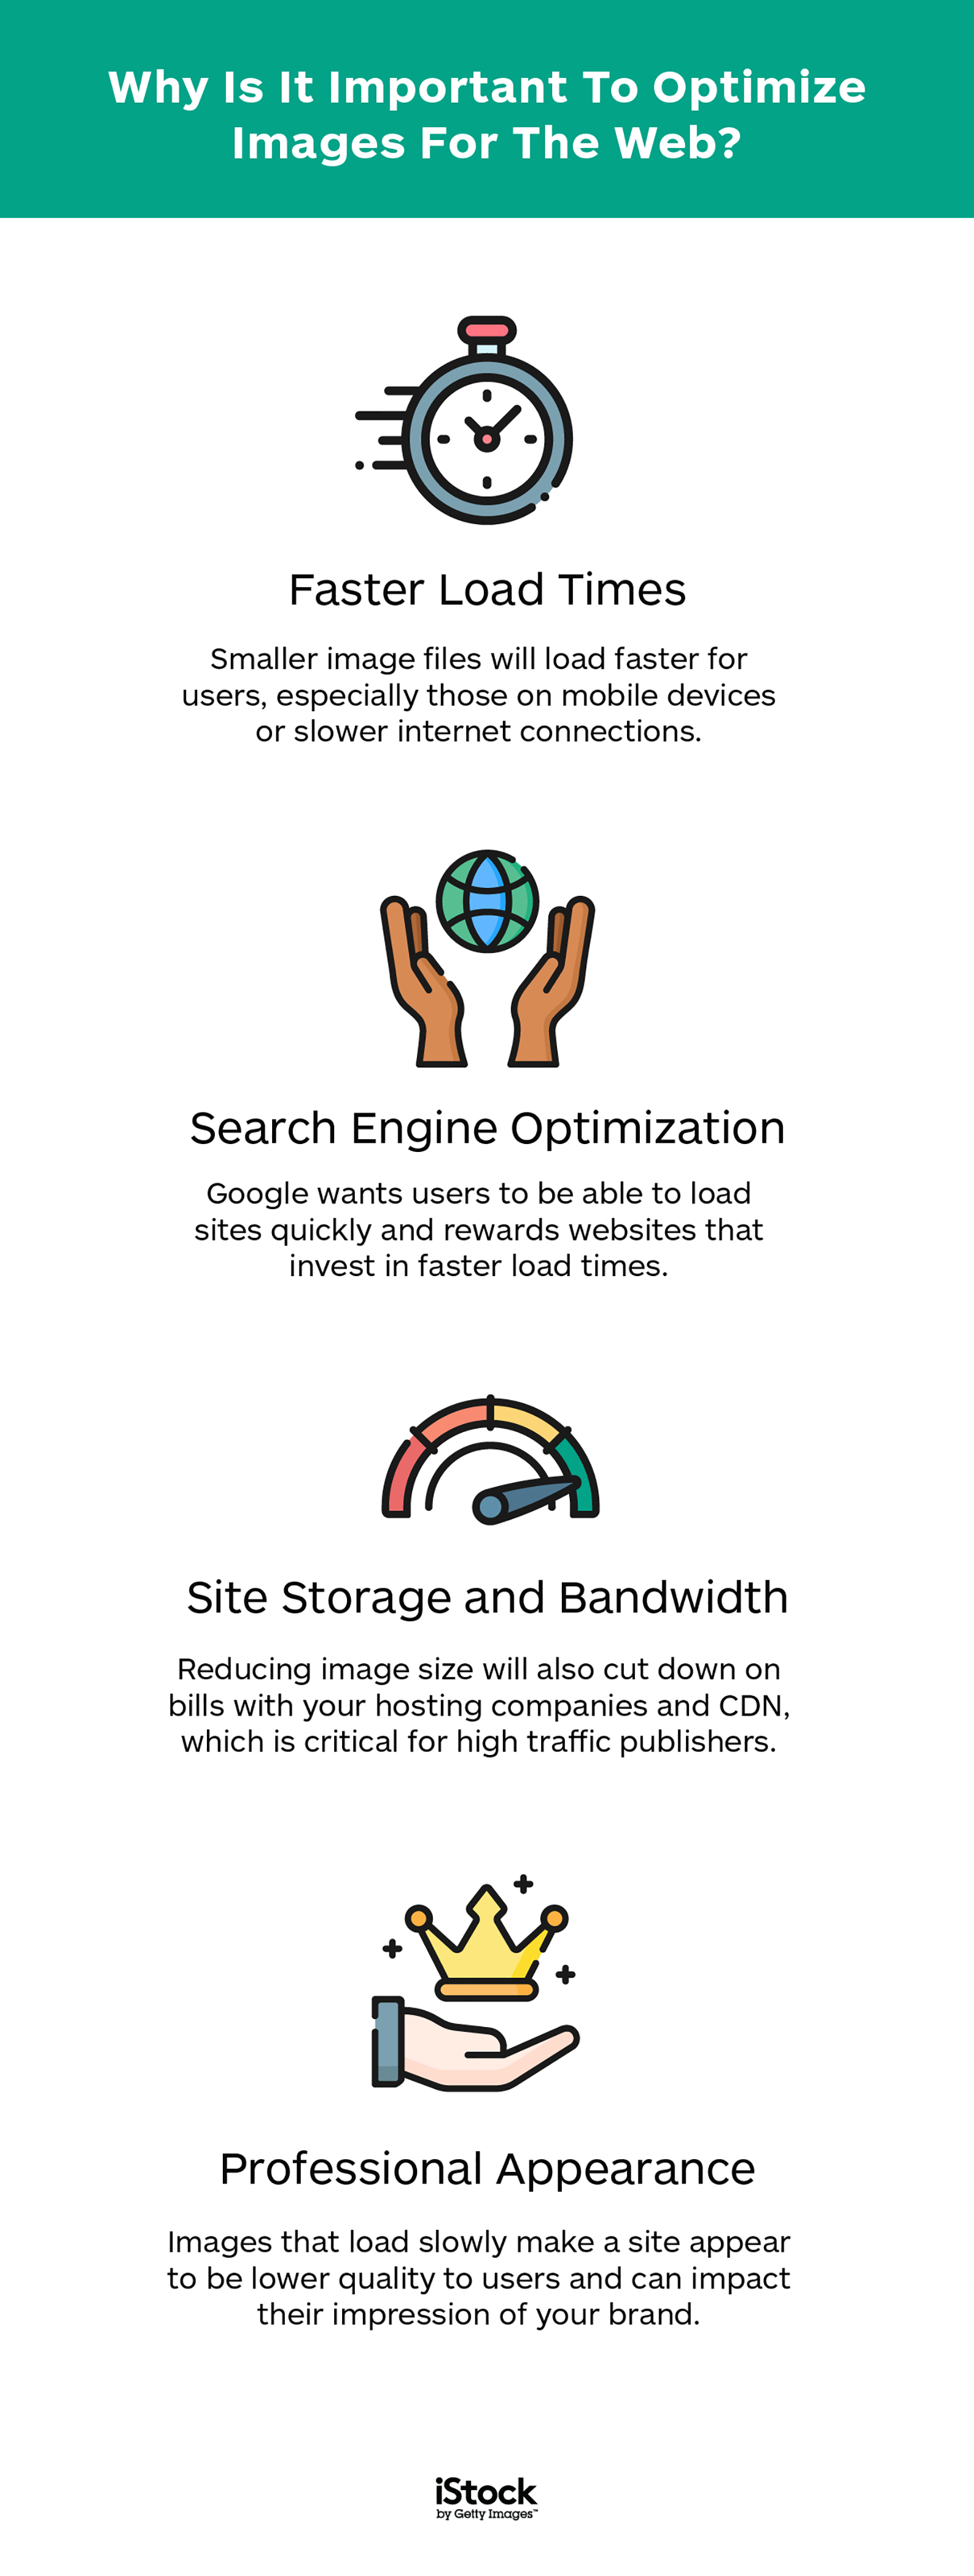 iStock tips on why it's important to optimize images for the web by following search engine optimization guidelines